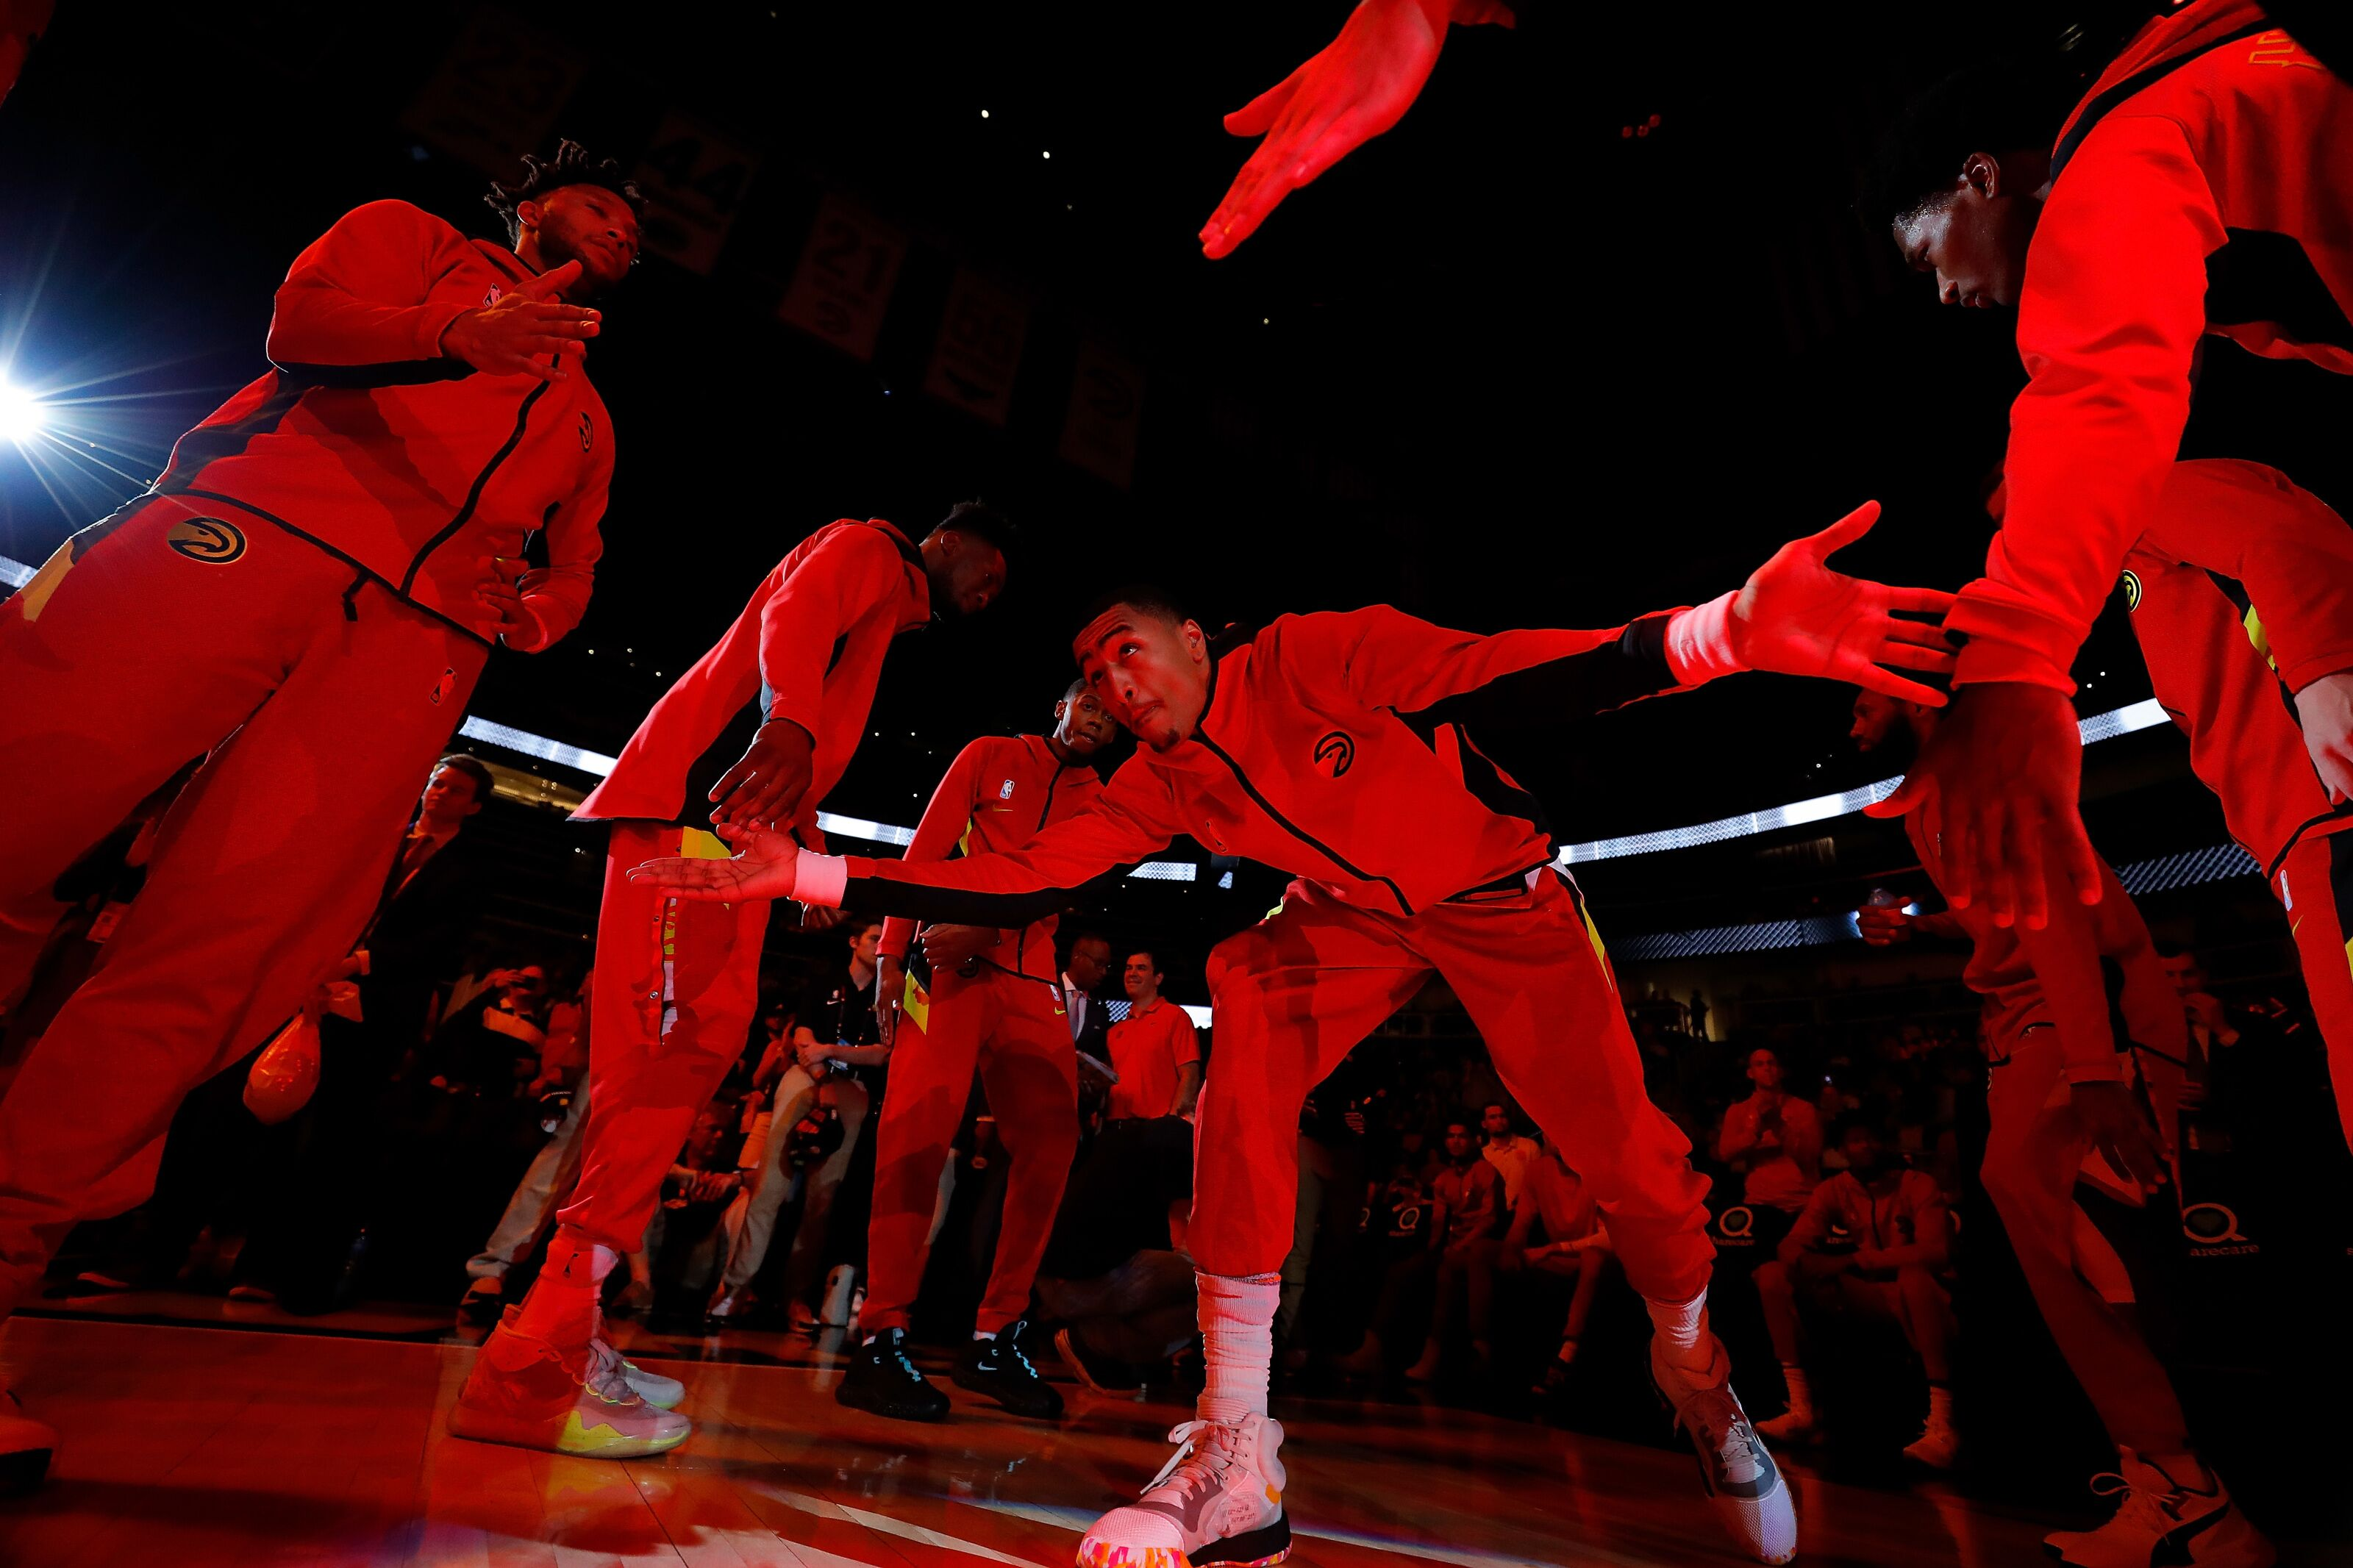 Does NBA have a problem with performance-enhancing drugs?